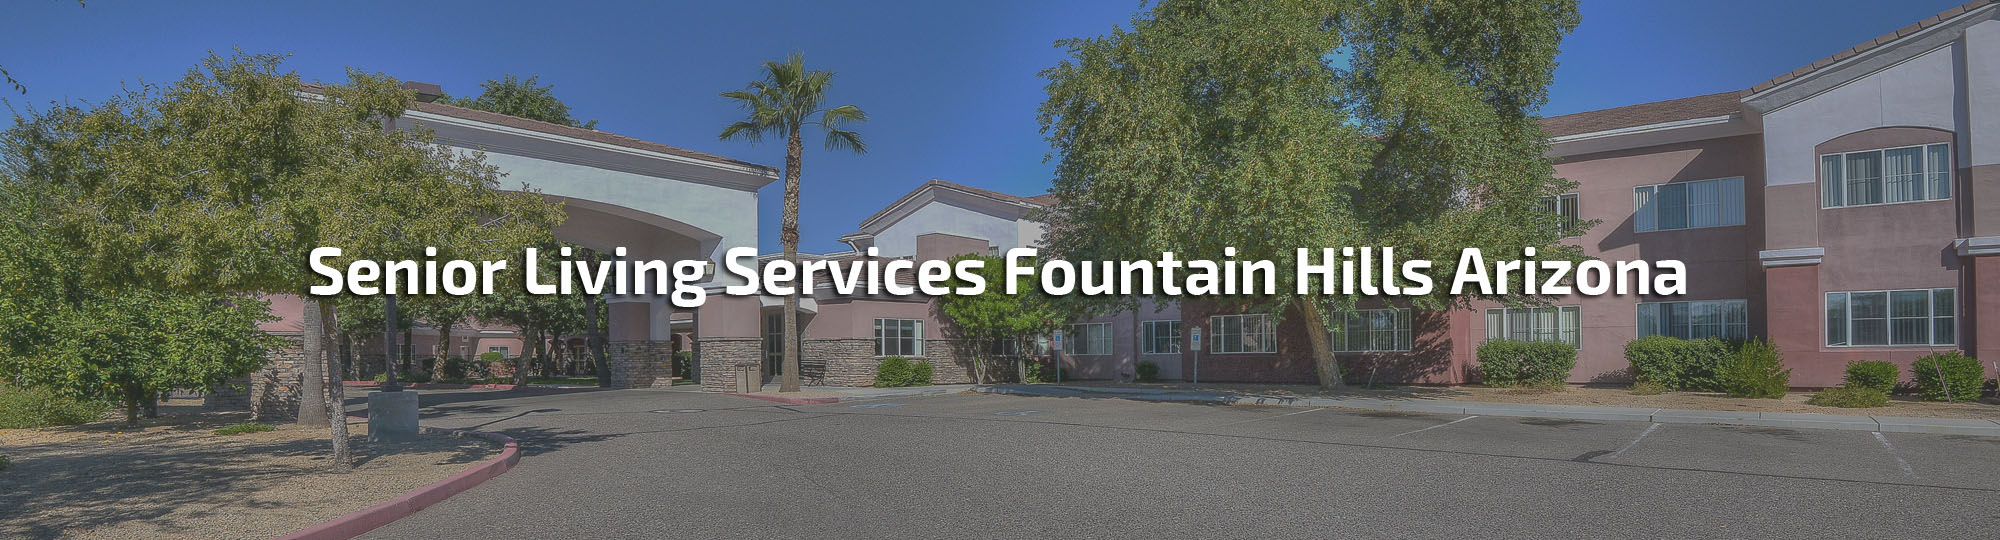 Senior Living Services Fountain Hills Arizona